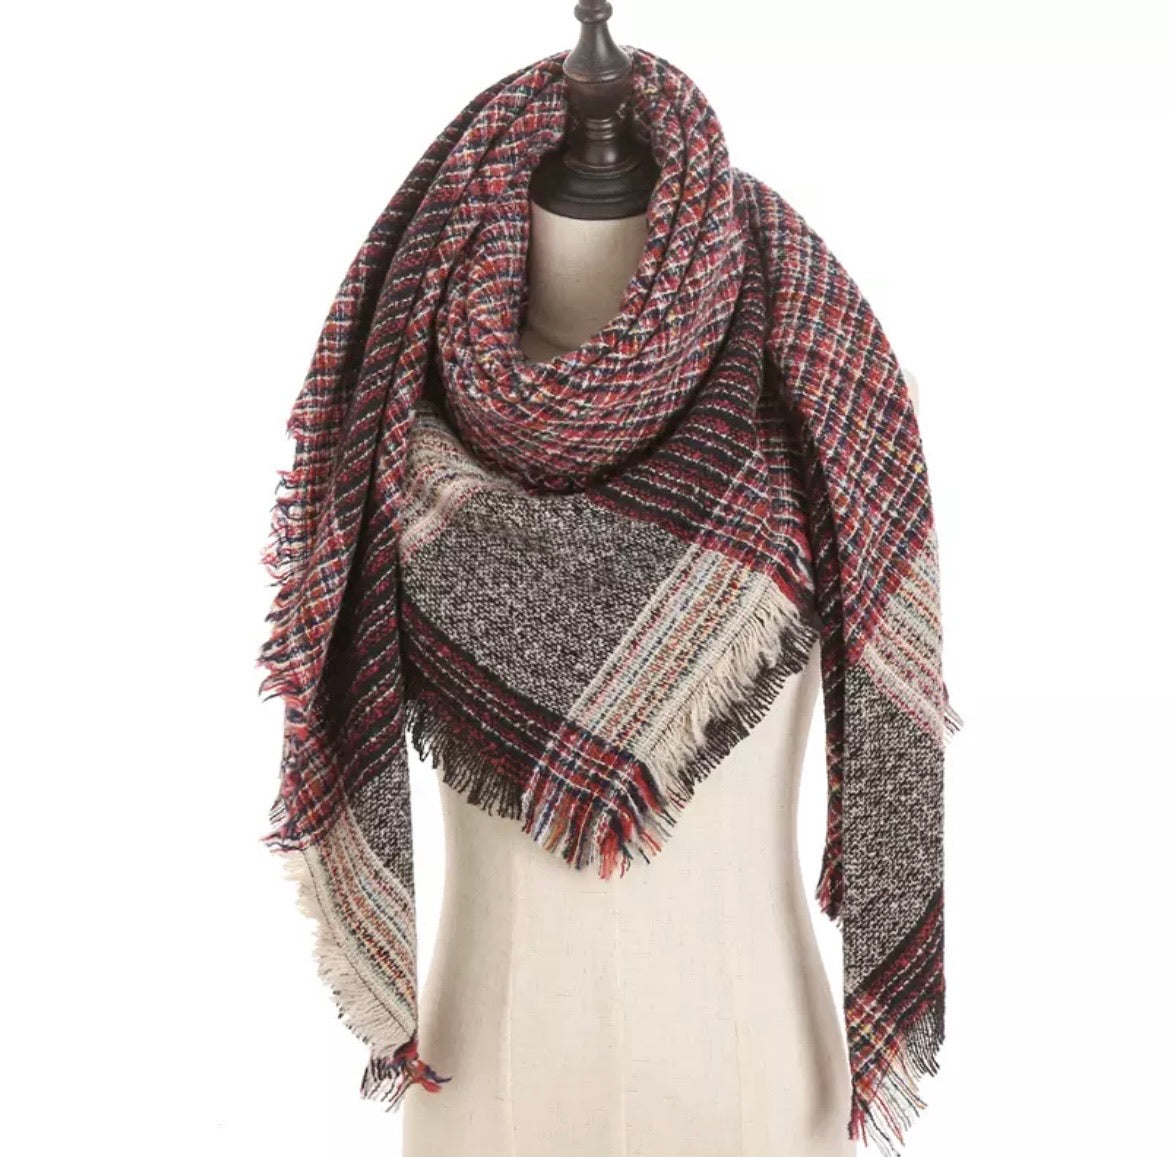 Kaleidoscope Red Navy Beige Plaid Triangle Blanket Scarf